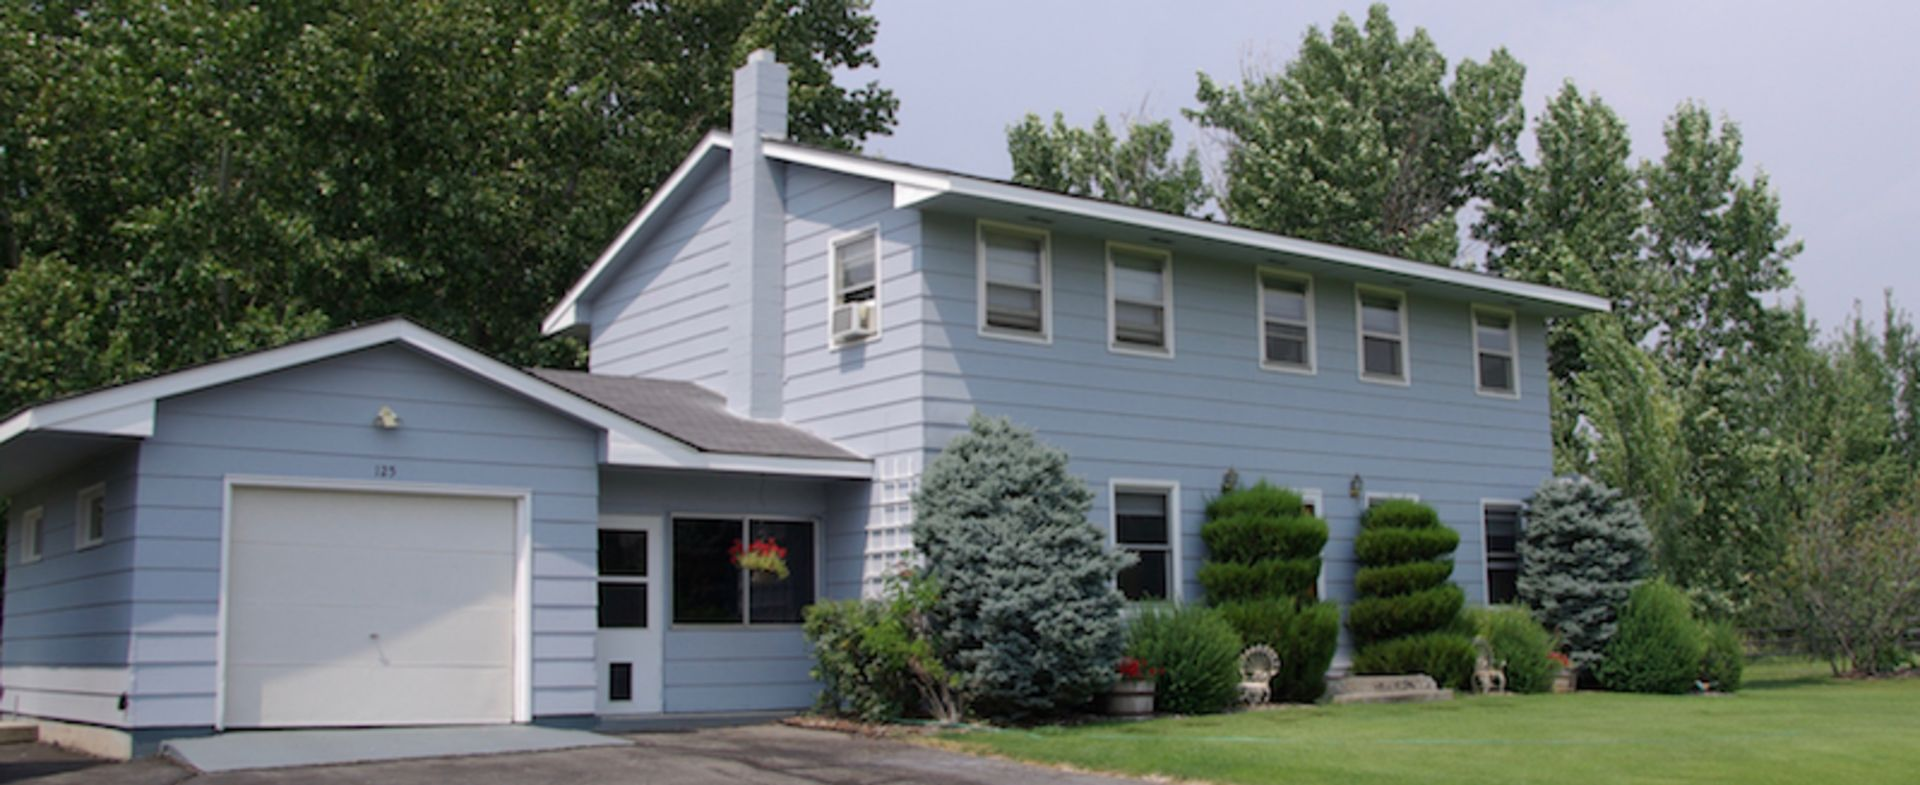 2 Story Private Farm House in Desirable Deer Creek!